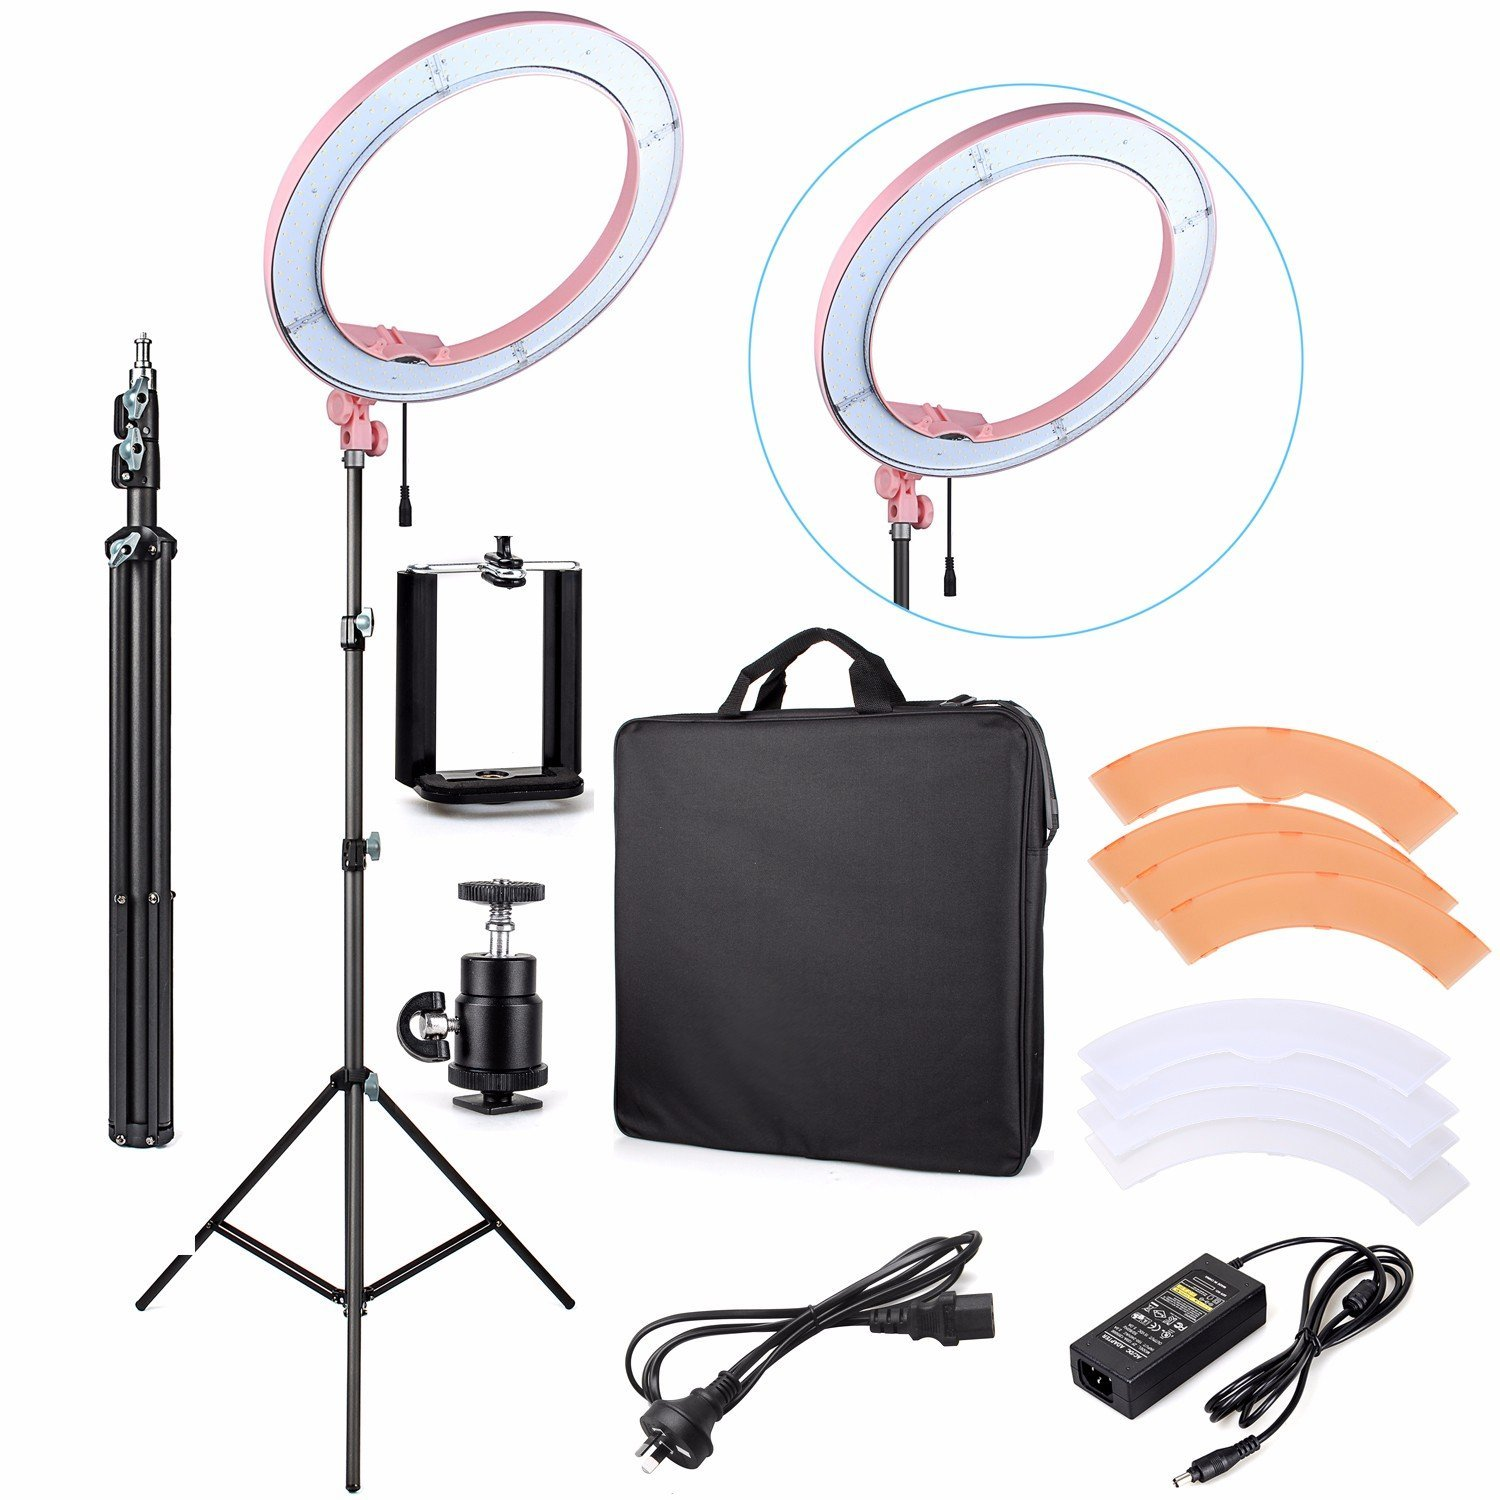 "EACHSHOT ES240 Kit, {Including Light, Stand, Phone Clamp, Tripod Head }240 LED 18"" Stepless Adjustable Ring Light Camera Photo/Video Portrait photography 240pcs LED 5500K Dimmable (Pink)"